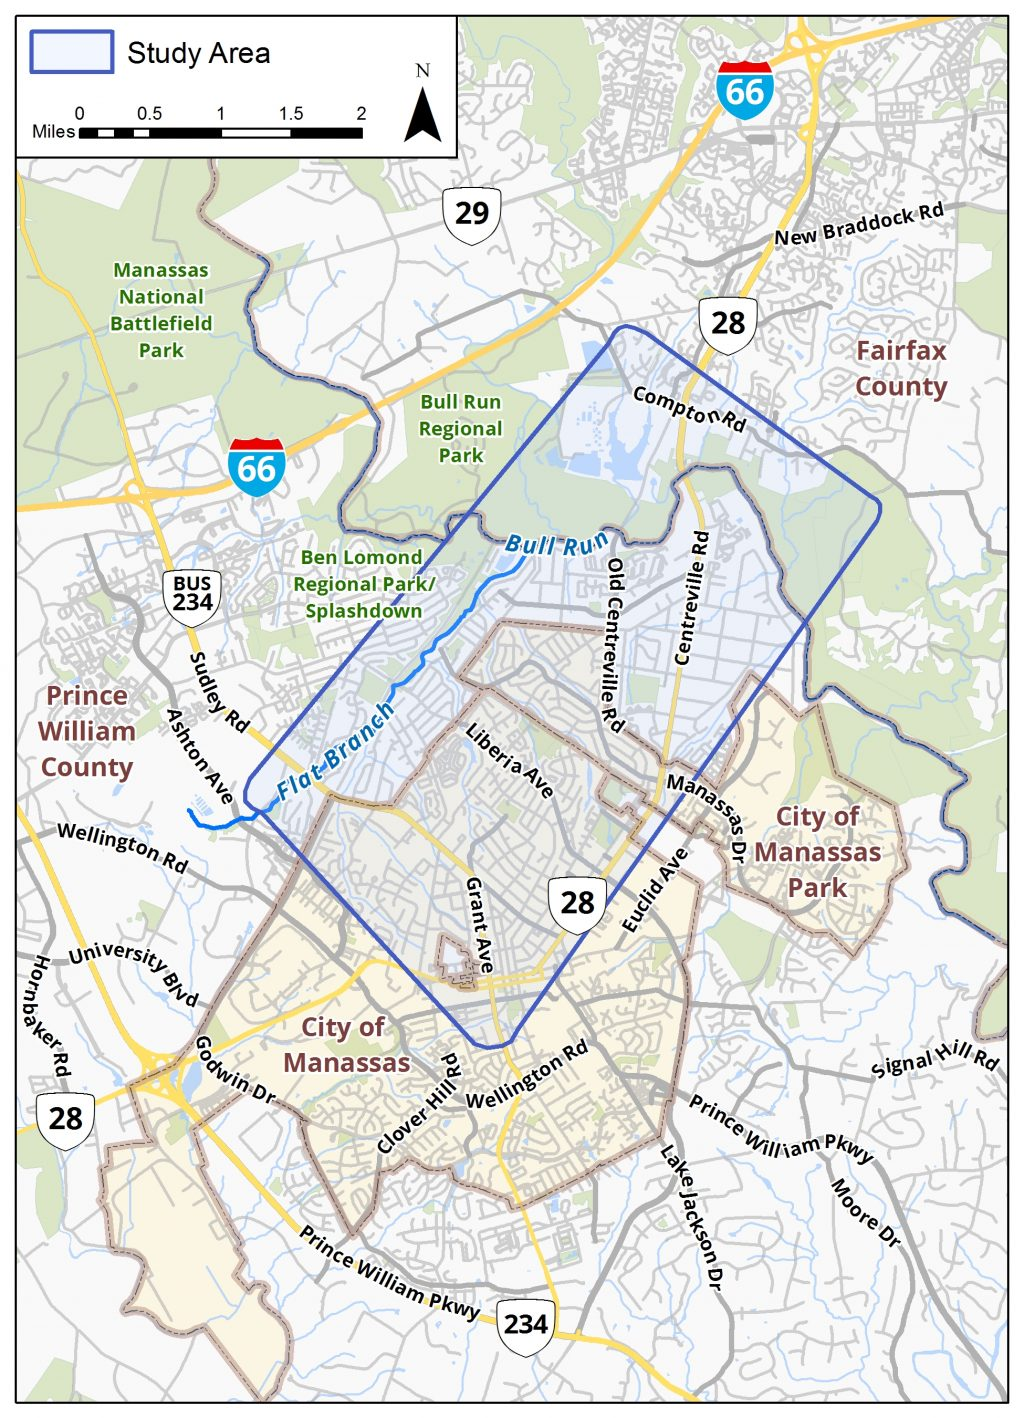 Northern Virginia Transportation Authority Route 28 Bypass Project